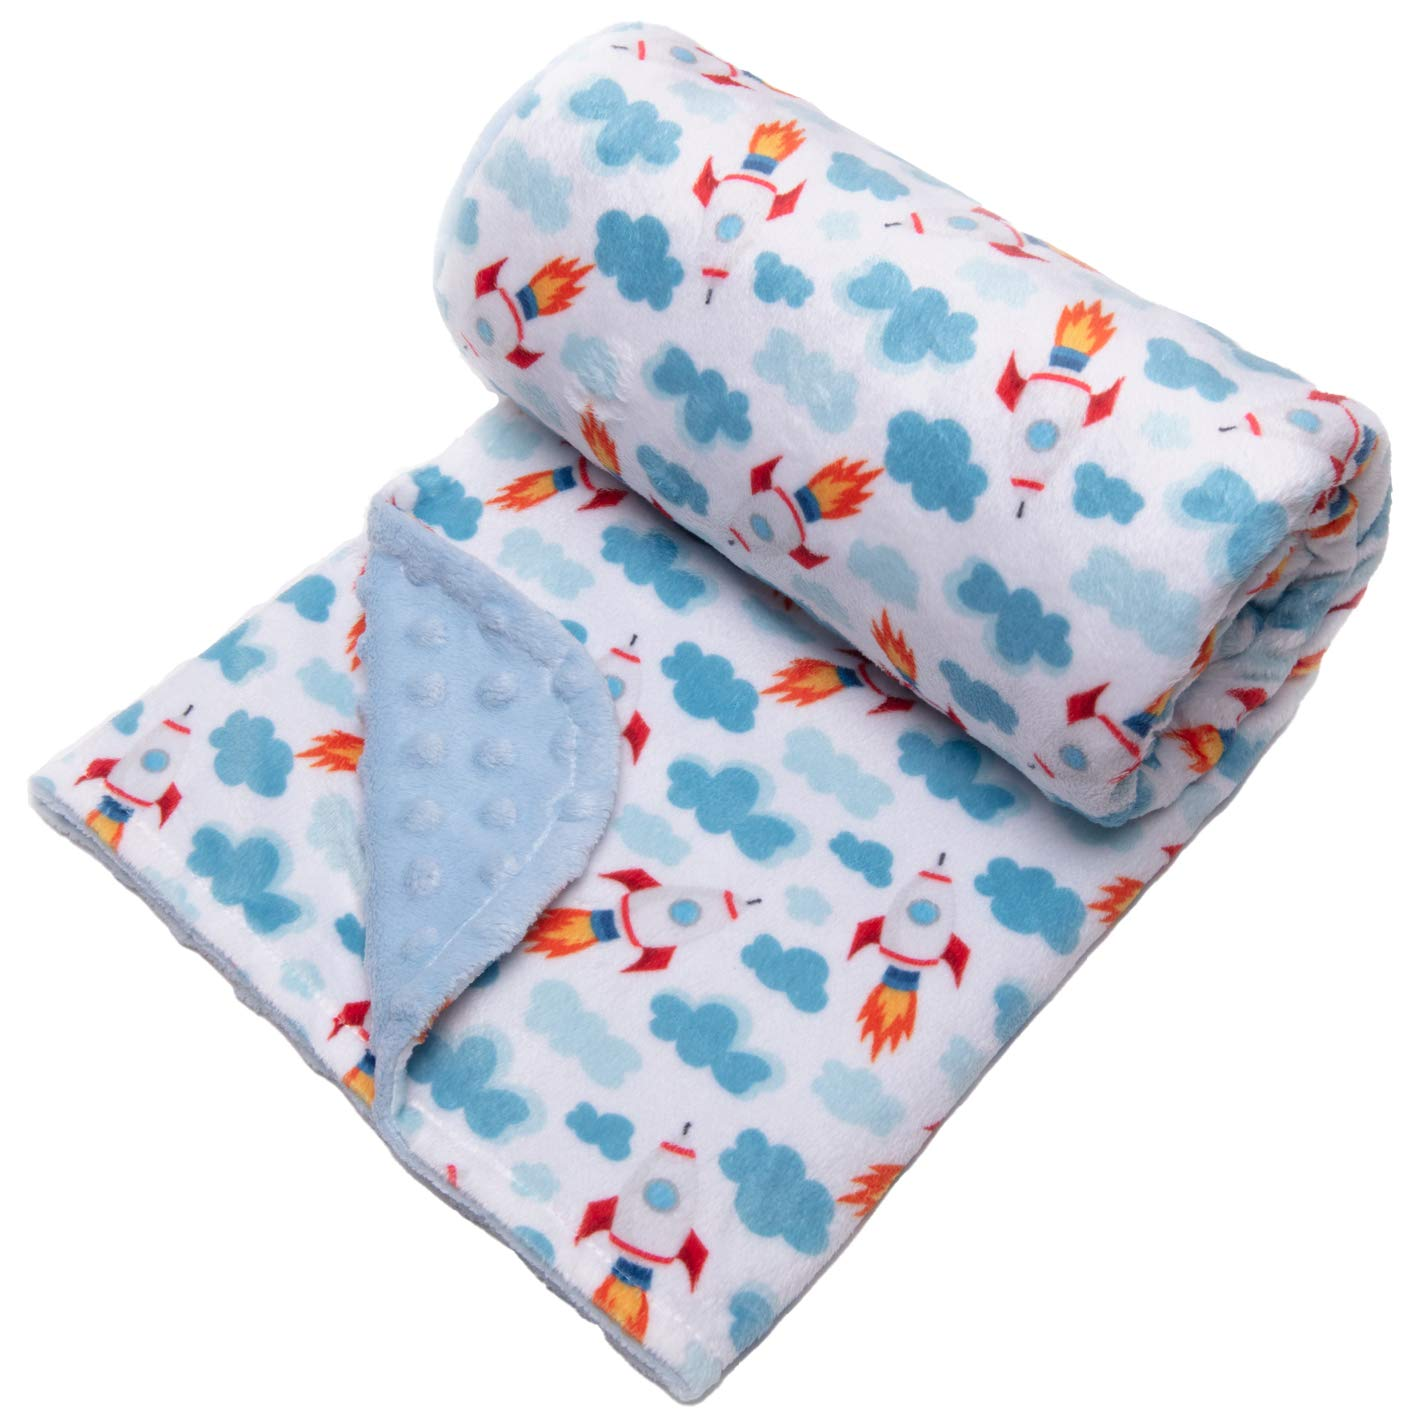 small size possibility to embroider the first name Soft minky blanket for baby and child with blue cloud pattern regular or large